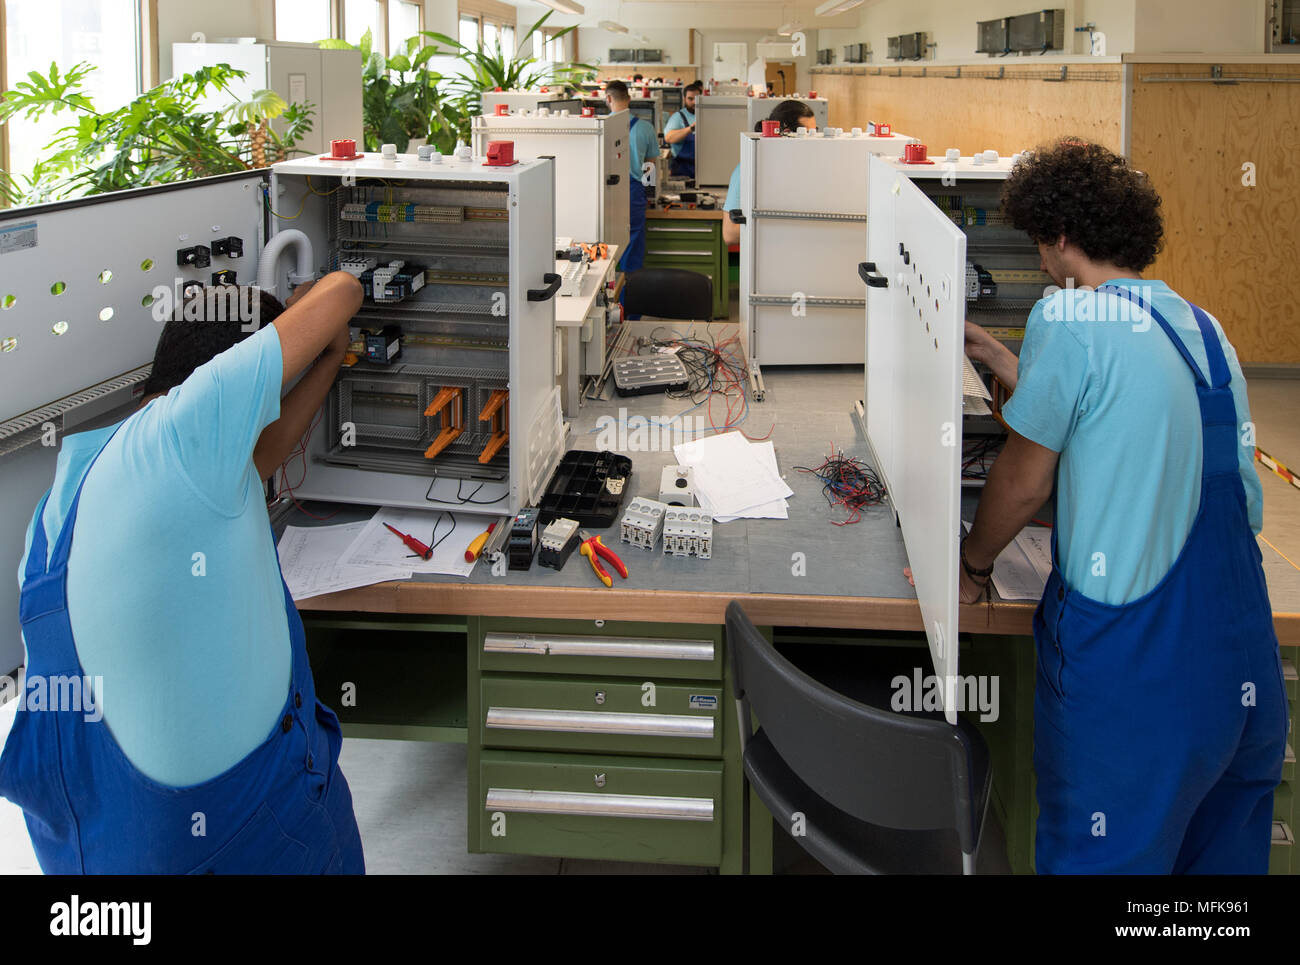 26 April 2016 Germany Leipzig Refugees Working On Wiring In An Electrical Training Enclosure At The Centre Of Siemens Professional Education